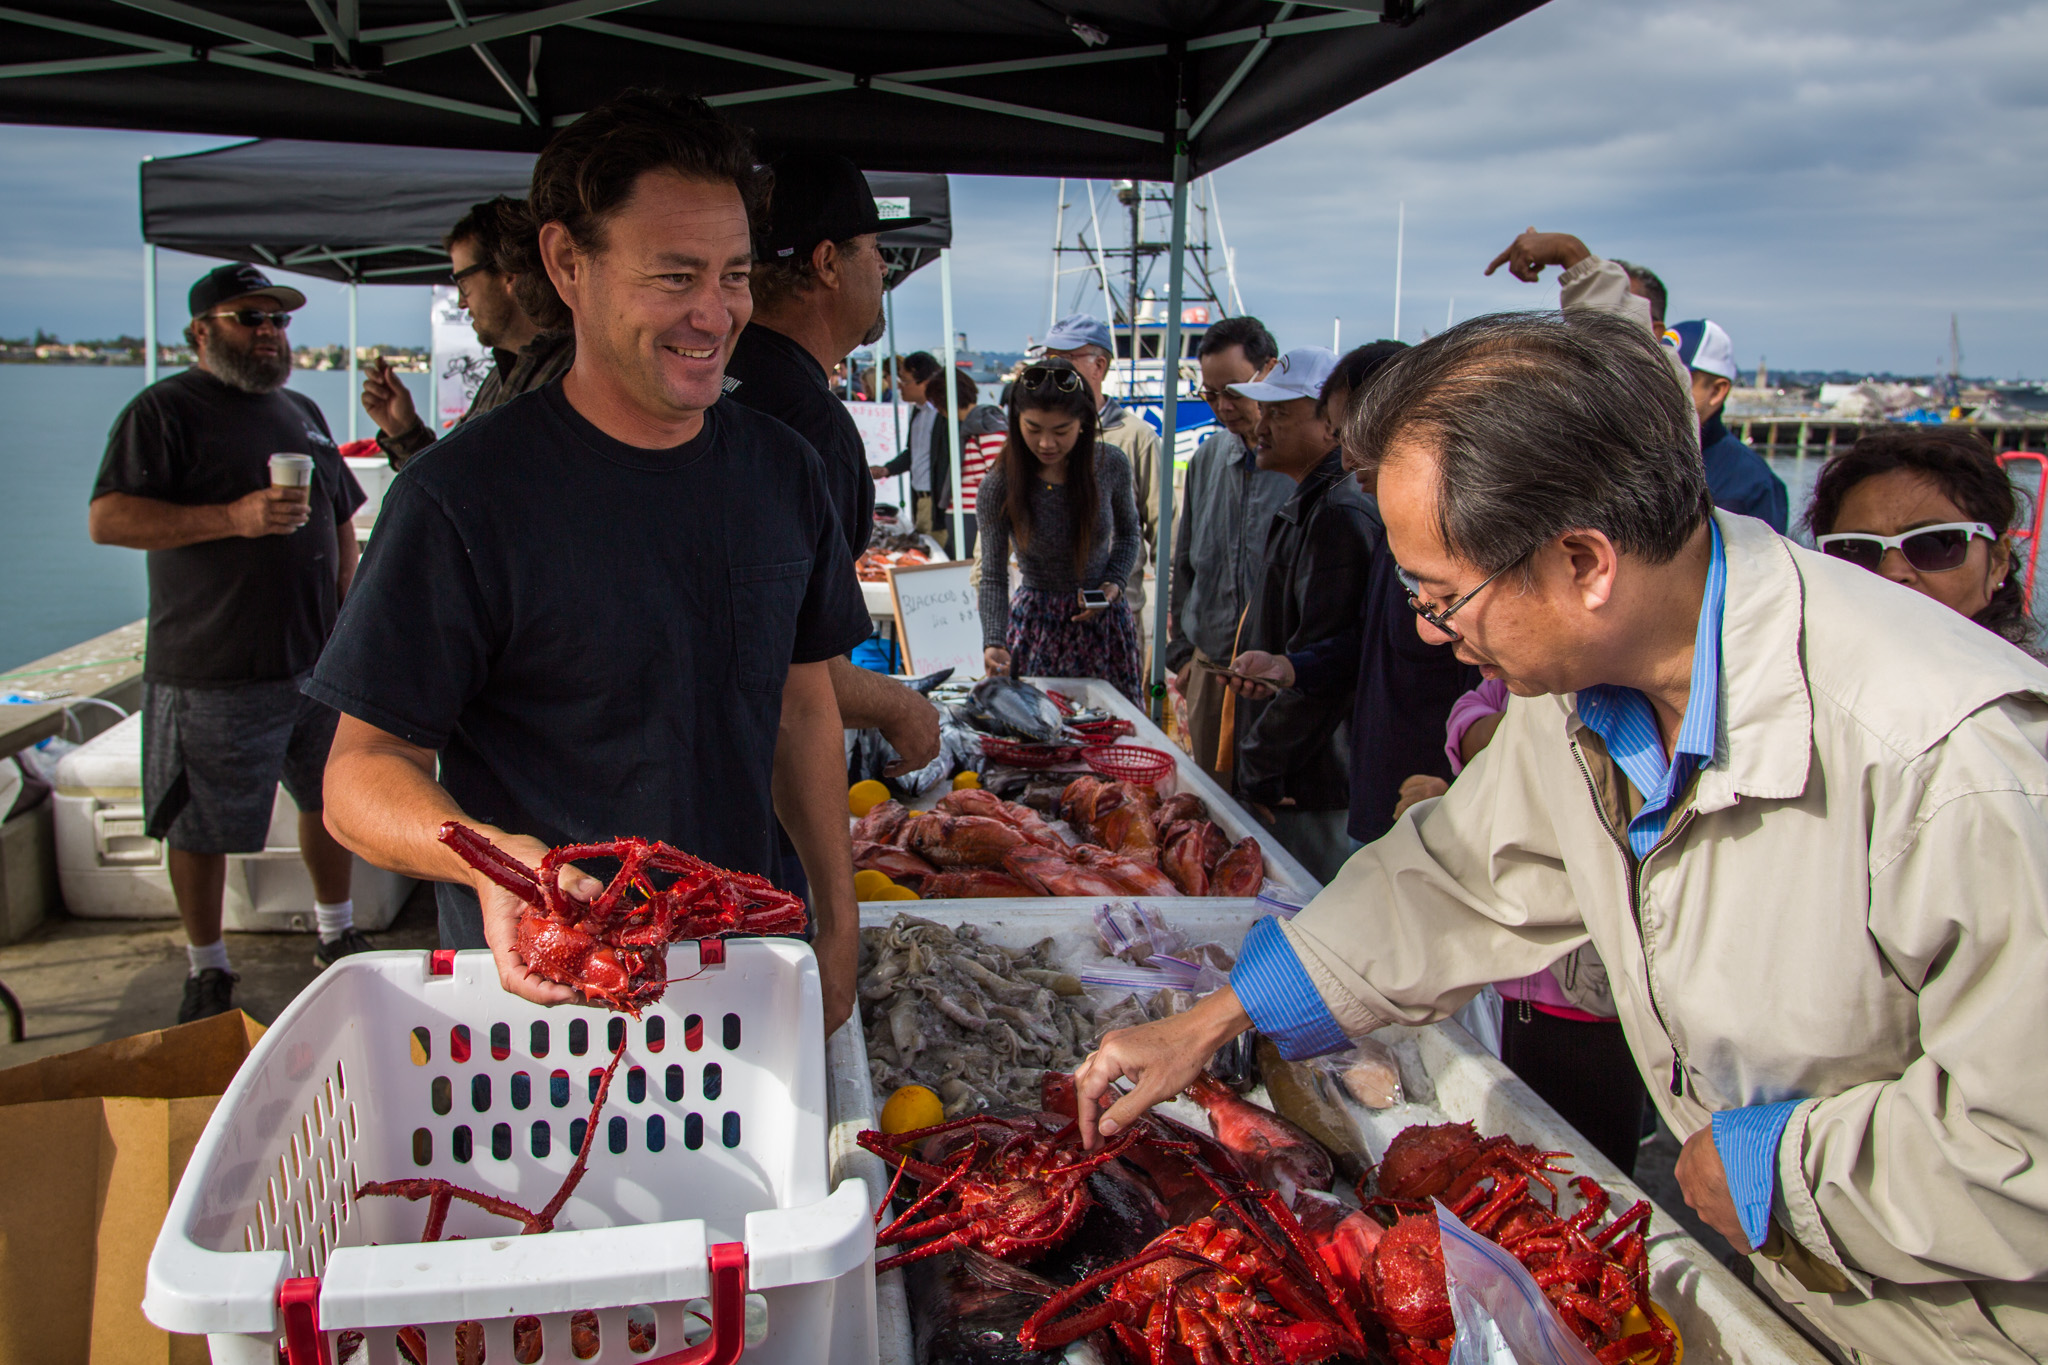 fisherman selling red king crab to a customer